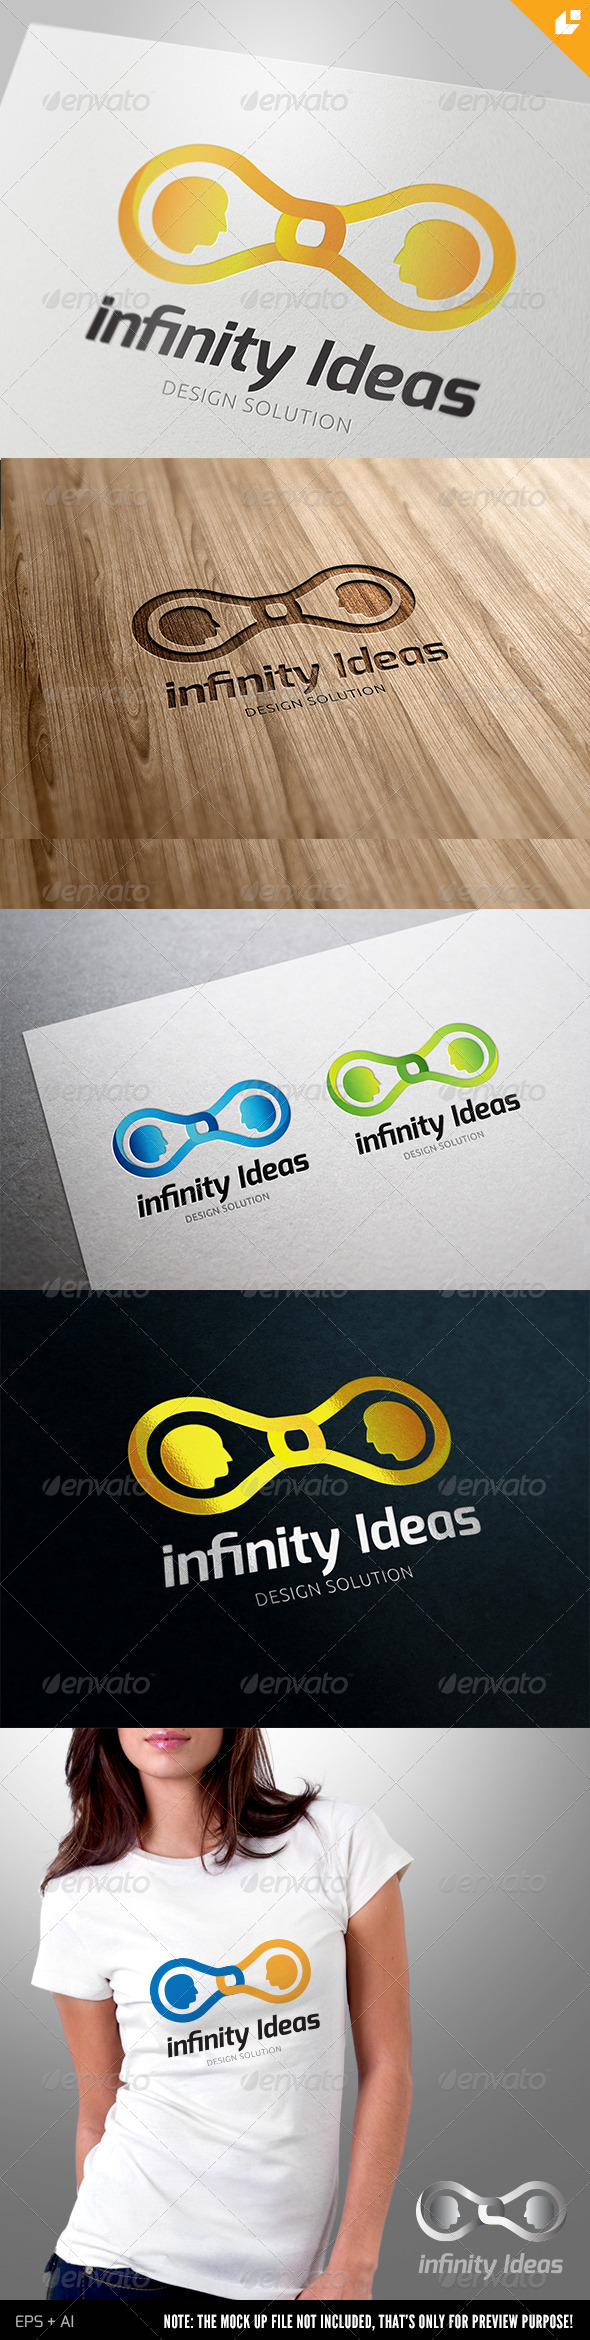 Infinity ideas Logo - 3d Abstract